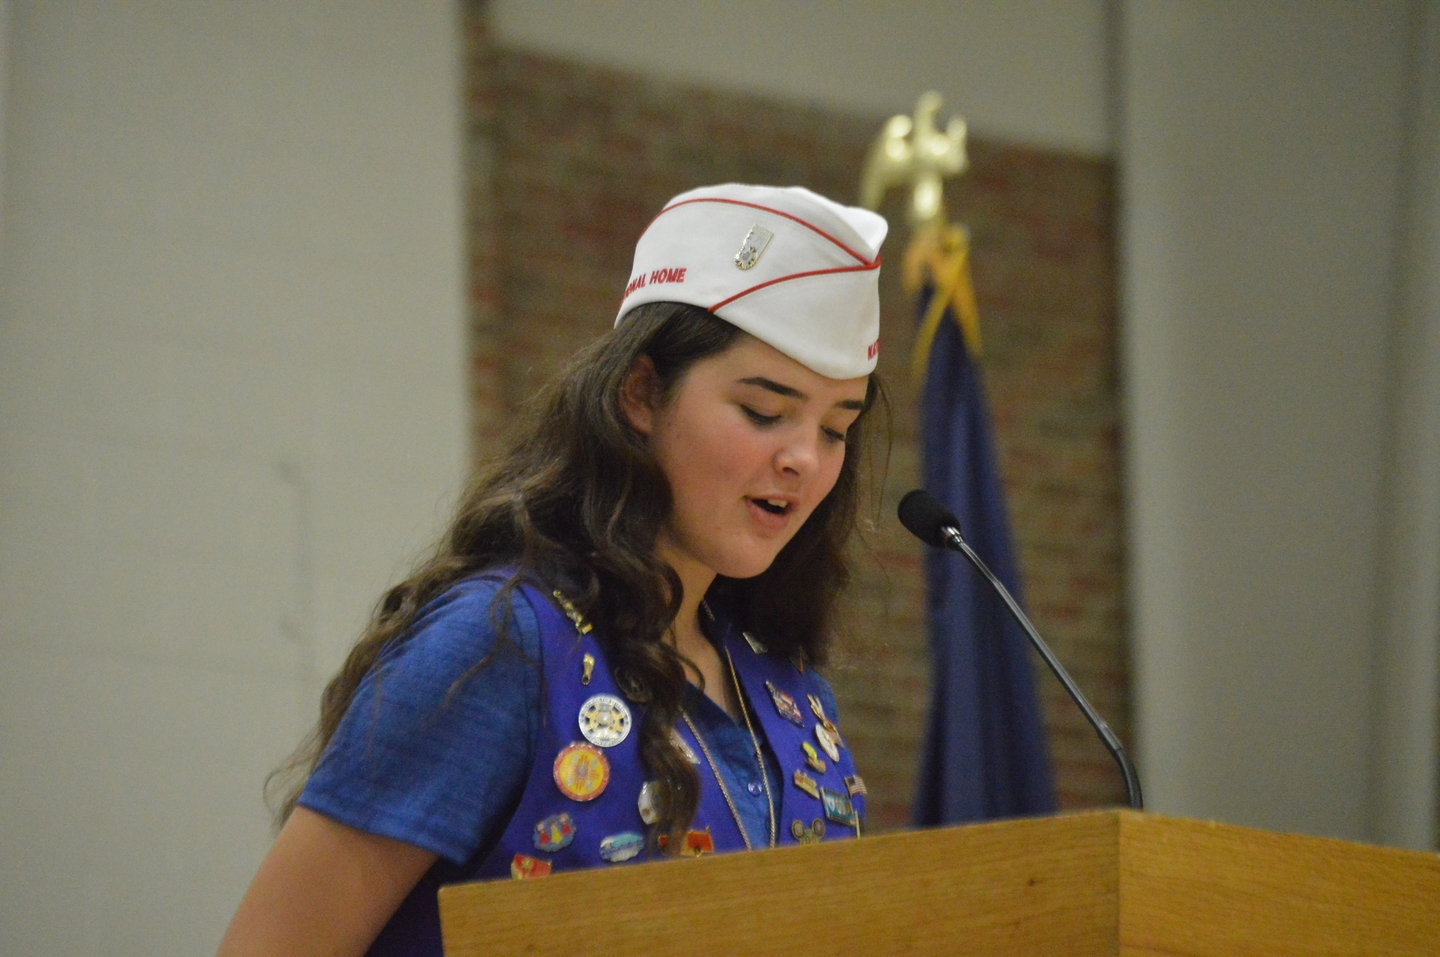 VFW National Poppy Child, 2017 addressed the Illinois Delegation at the VFW National Home.